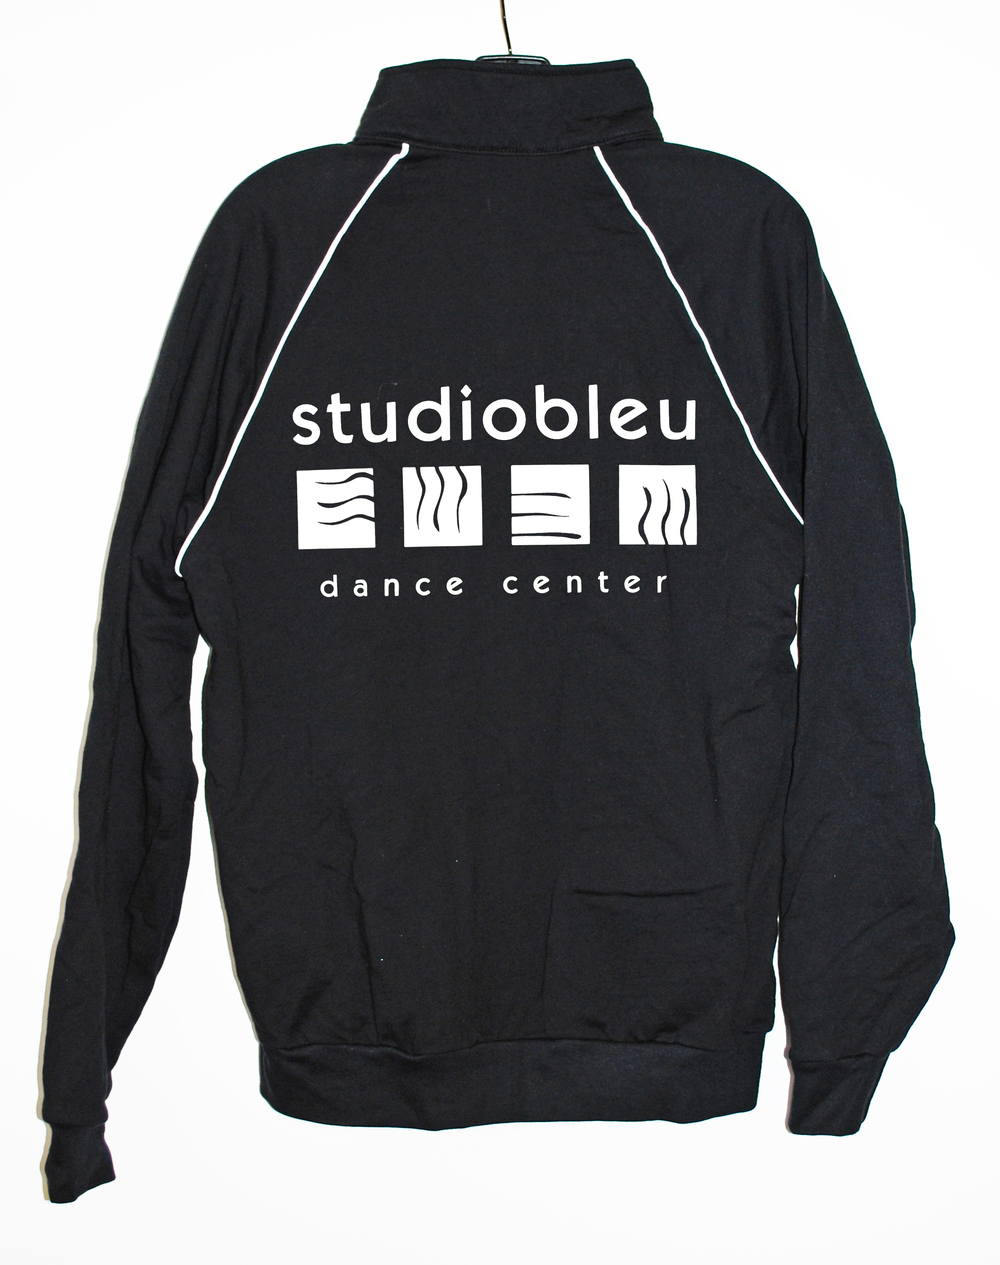 18 American Apparel Jacket back view ink.jpg